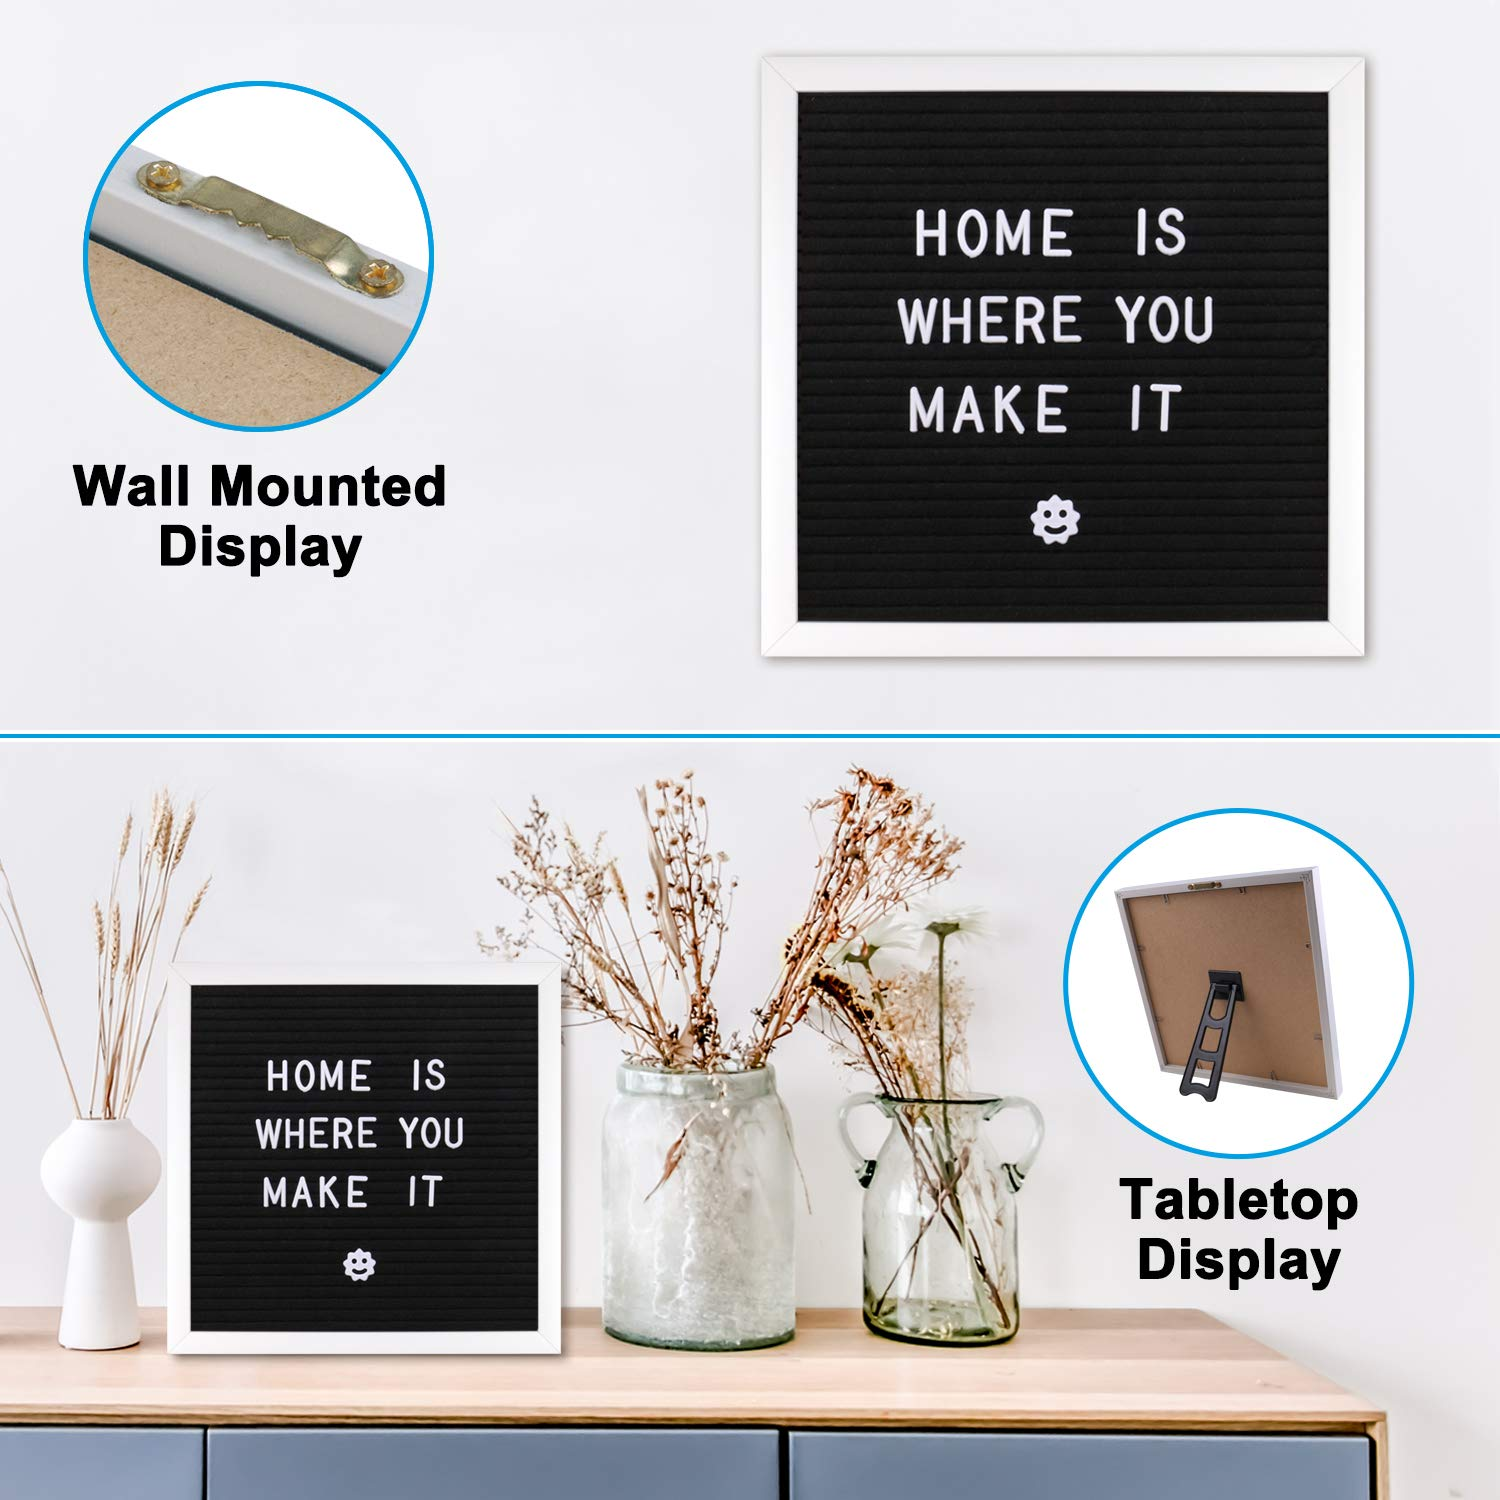 Changable Letter Board 10x10 inches, Message Sign Board with Adjustable Stand,Wall Mount, Canvas Bag and 380 Letters, Numbers & Symbols